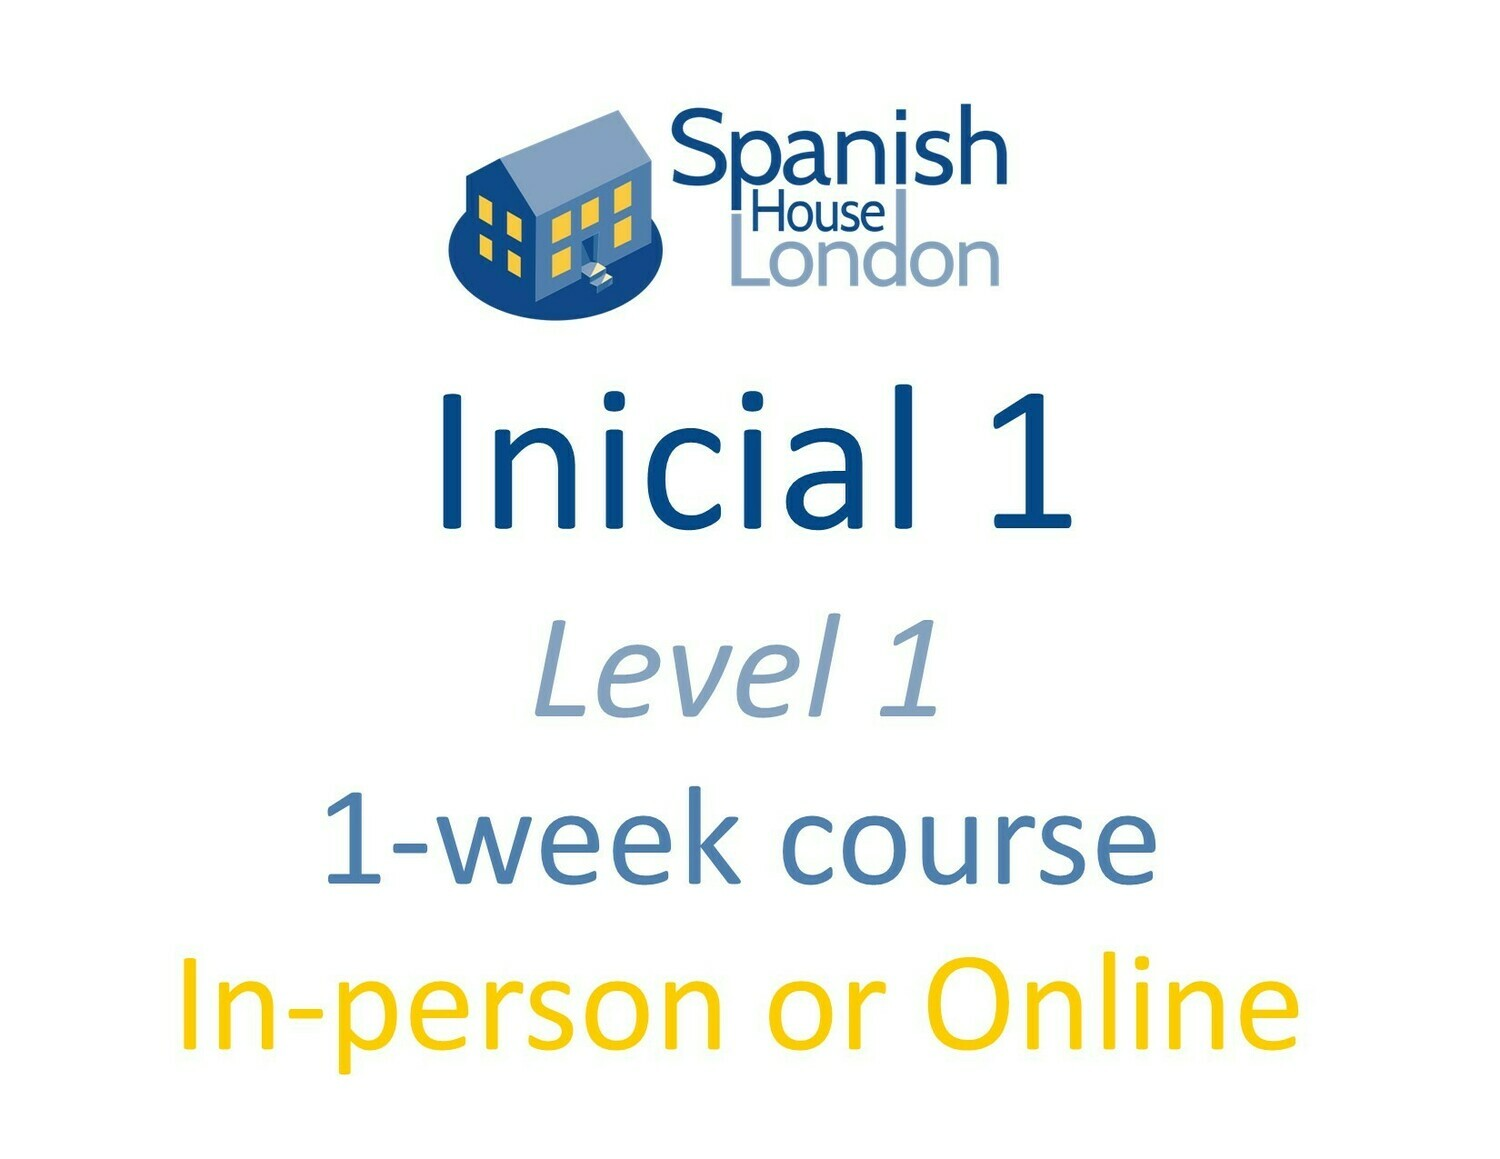 One-Week Intensive Inicial 1 Course starting on 10th May at 10am